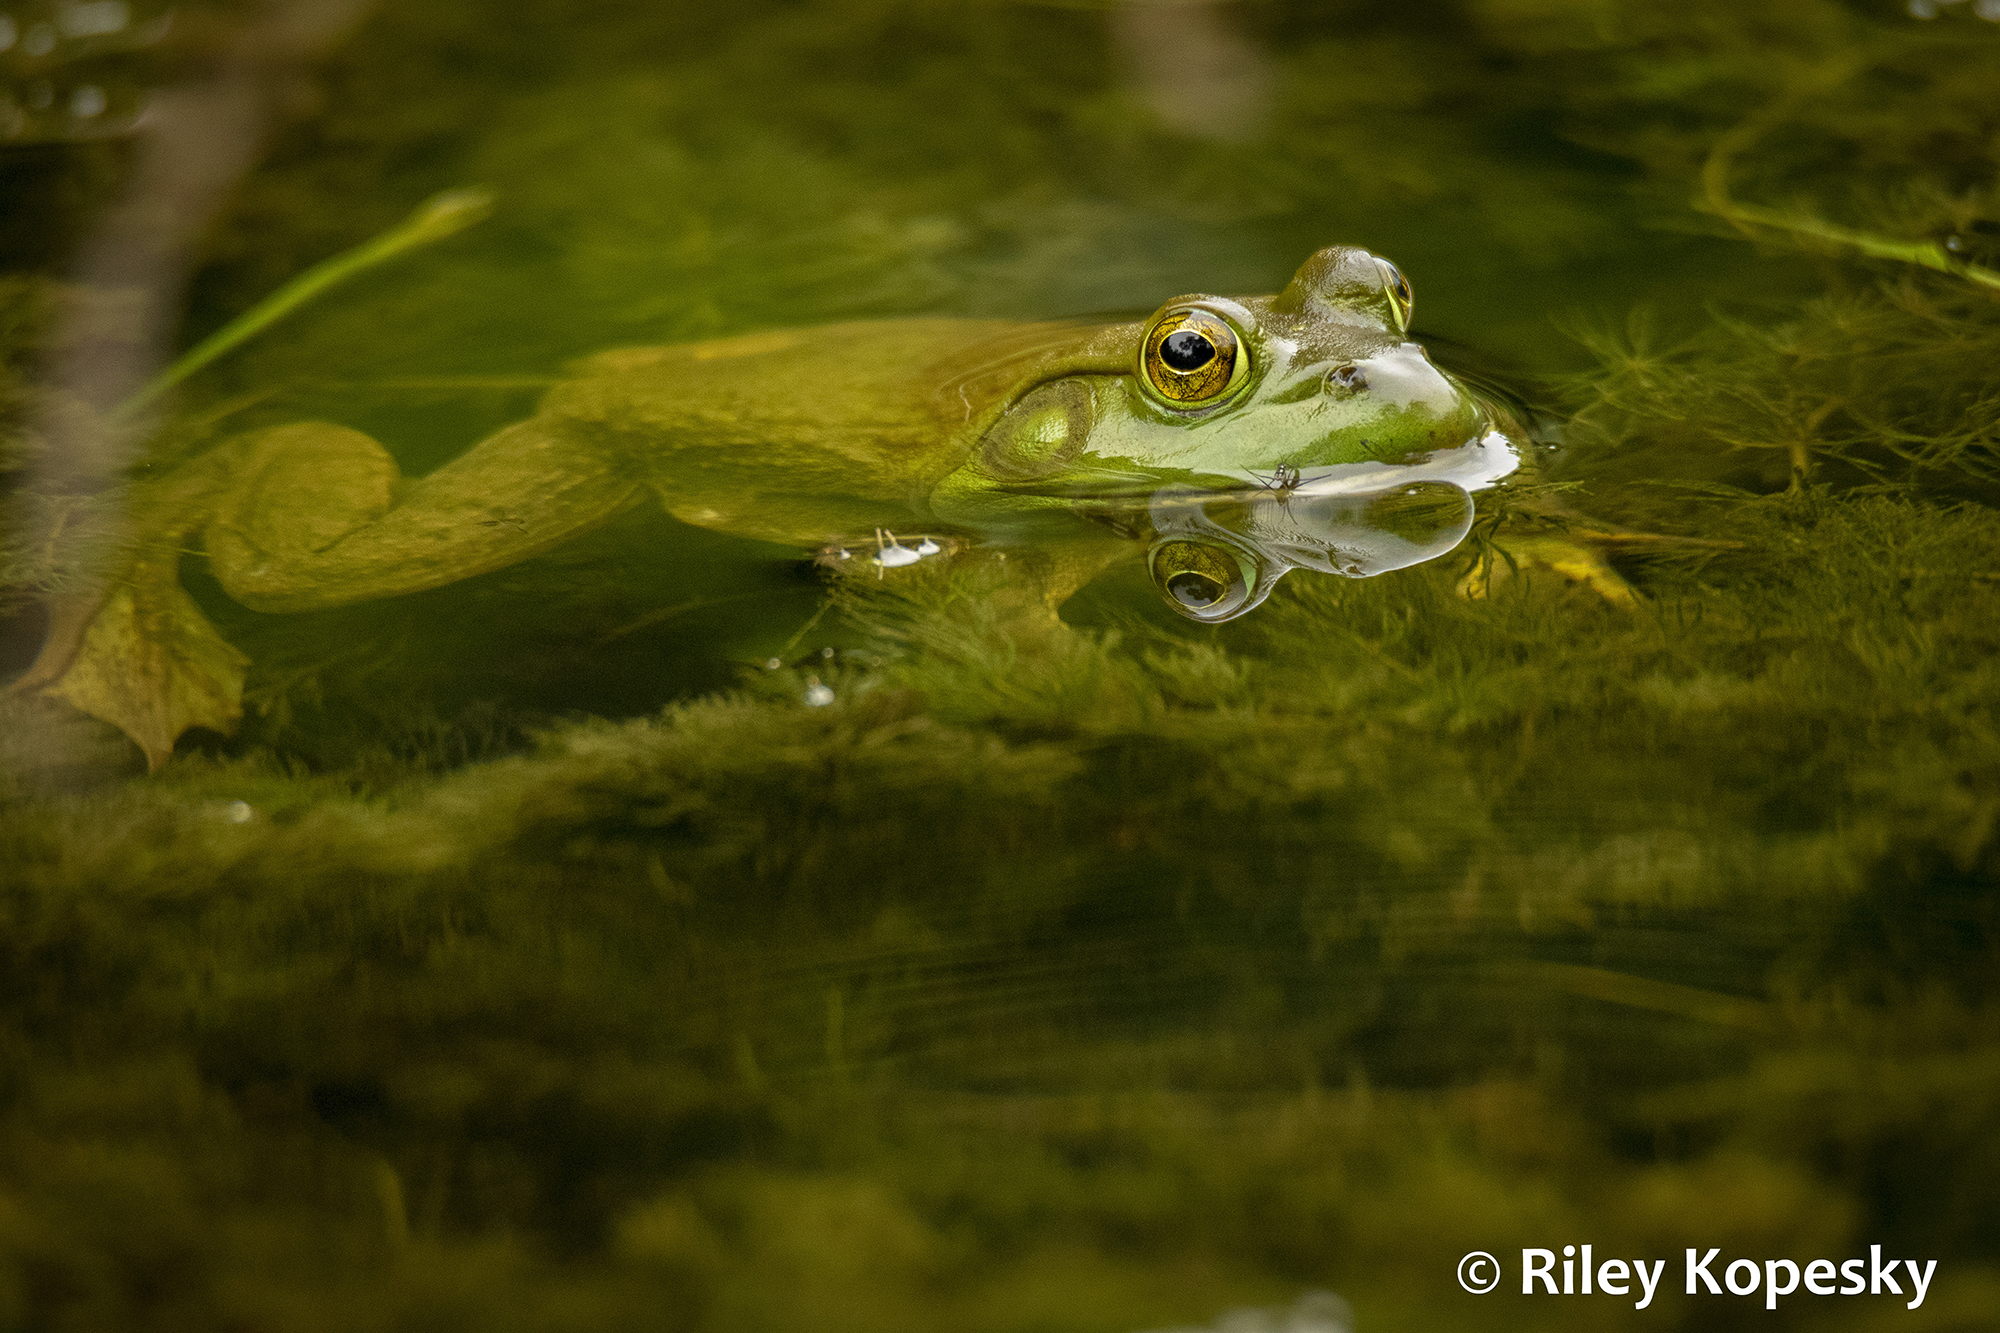 A frog peeks out of the water above submerged plants